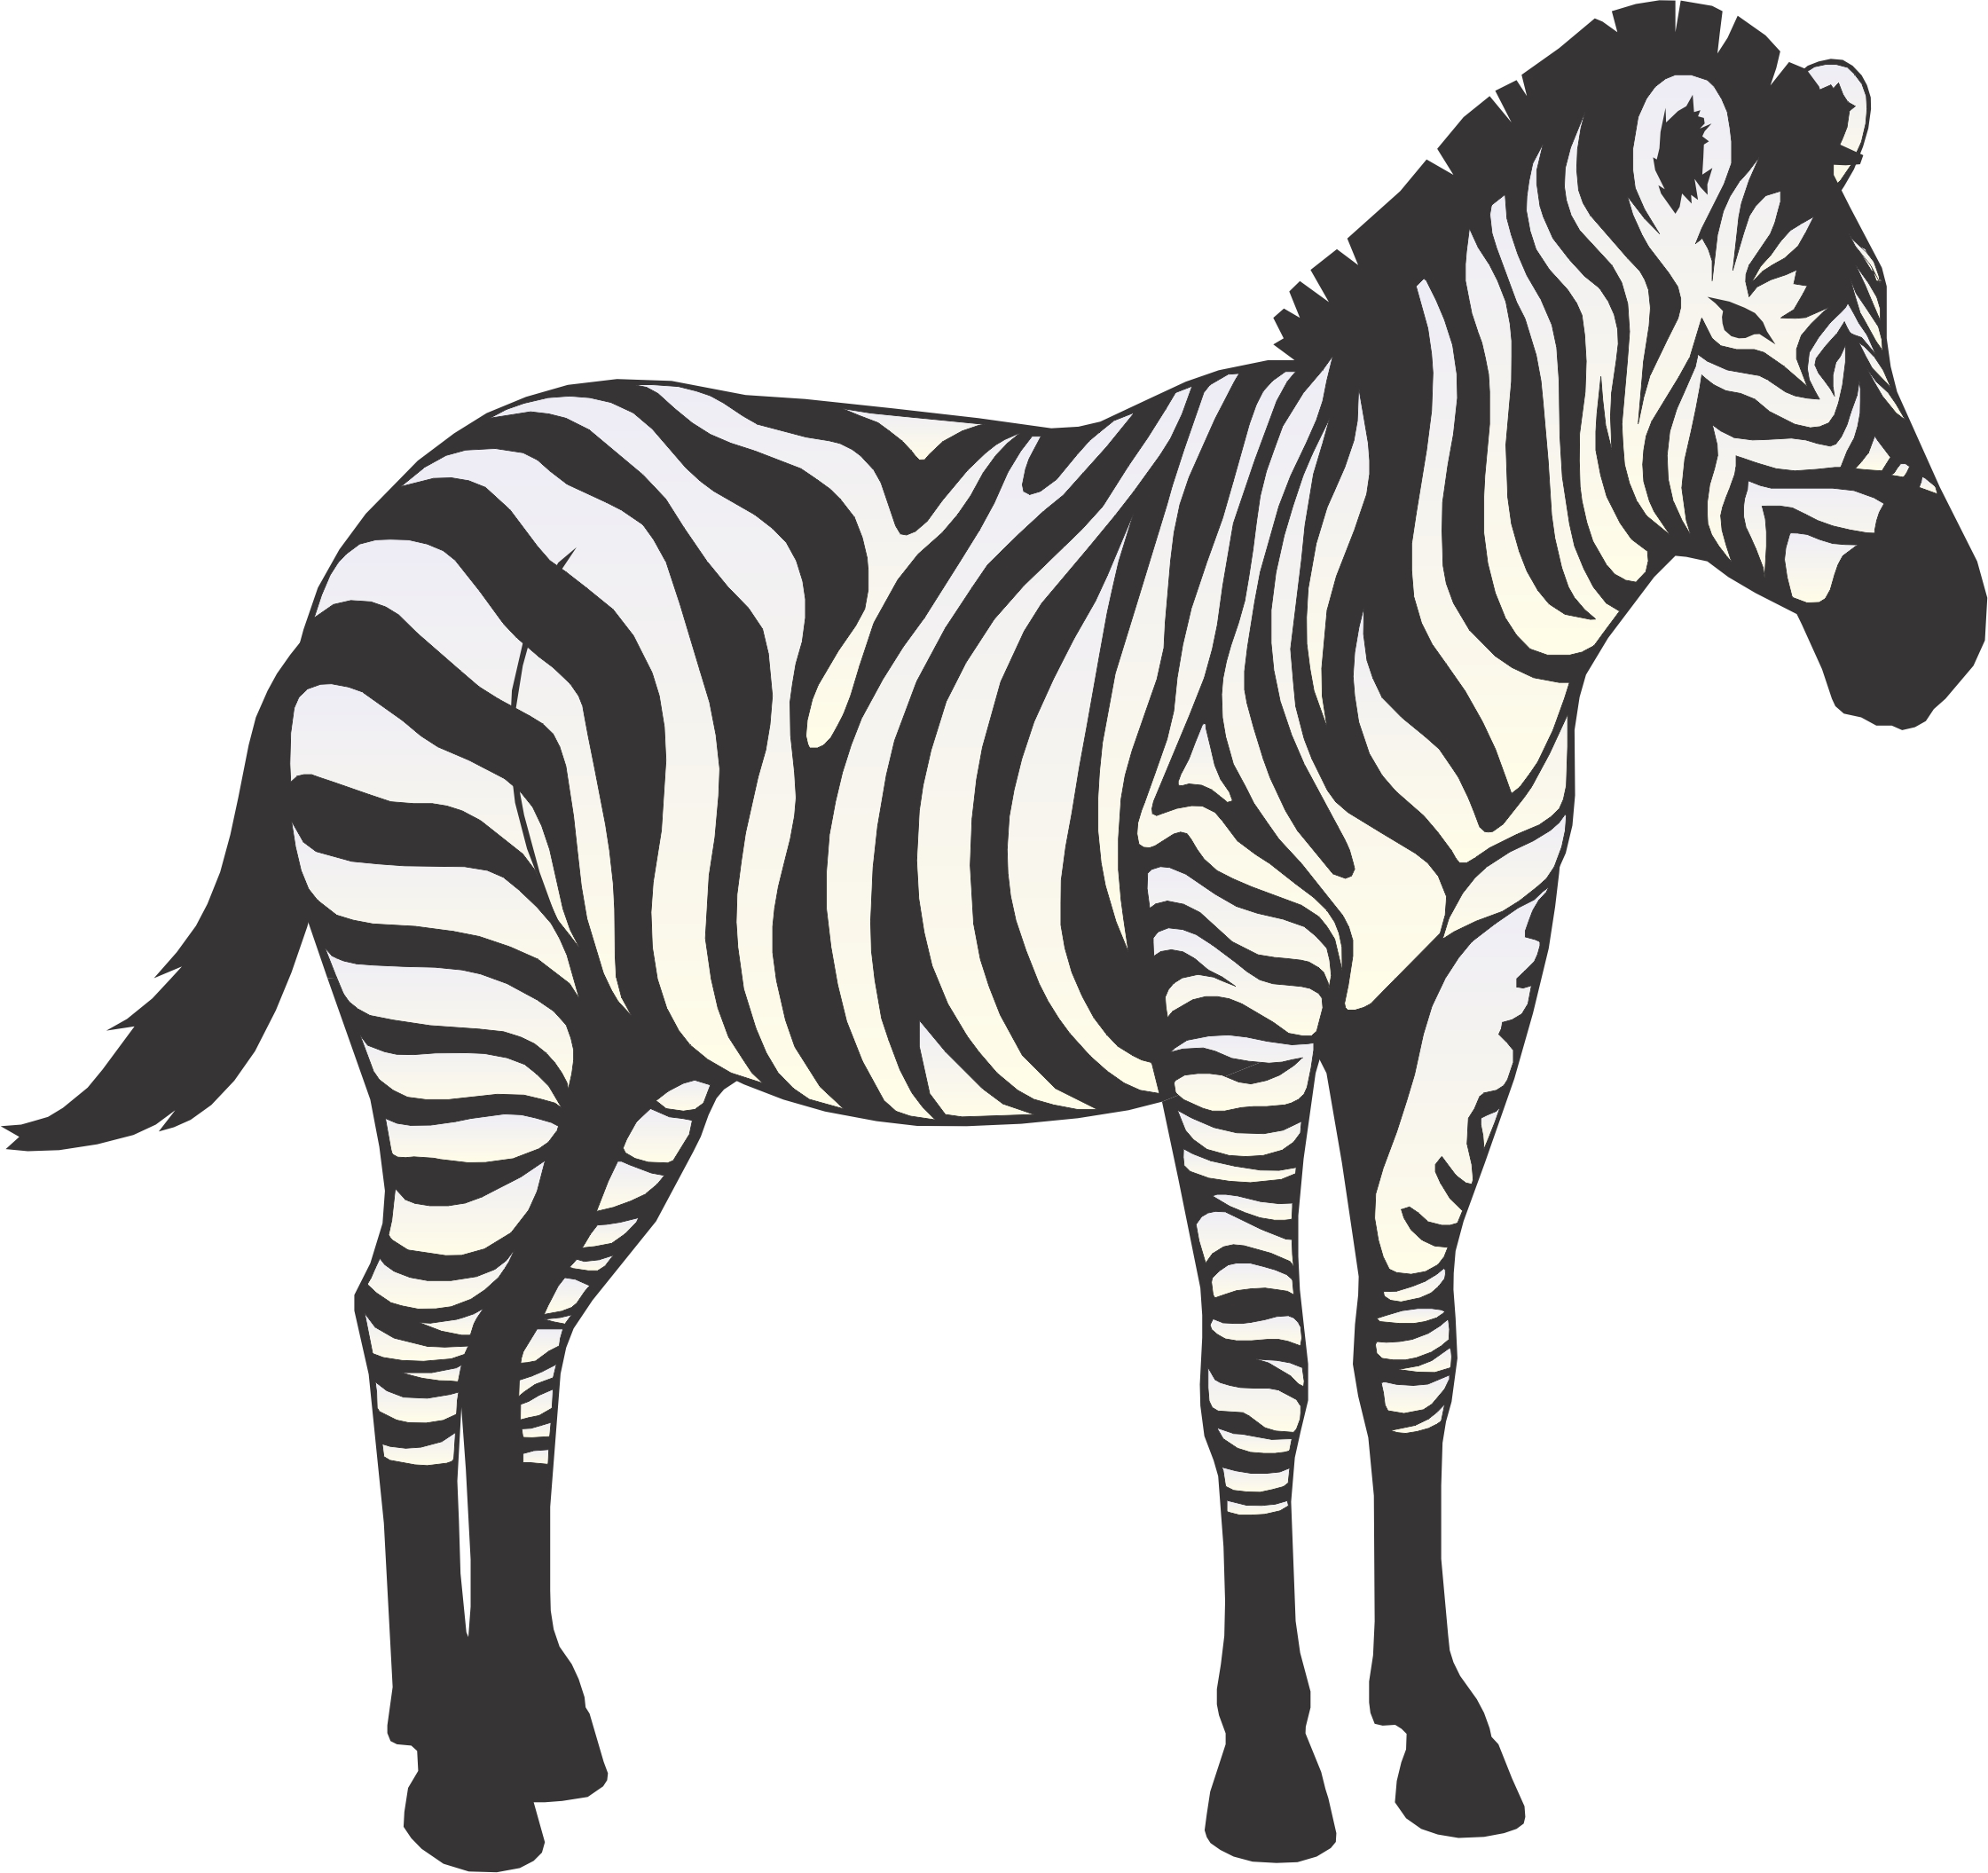 Zebra Cartoon Black And White